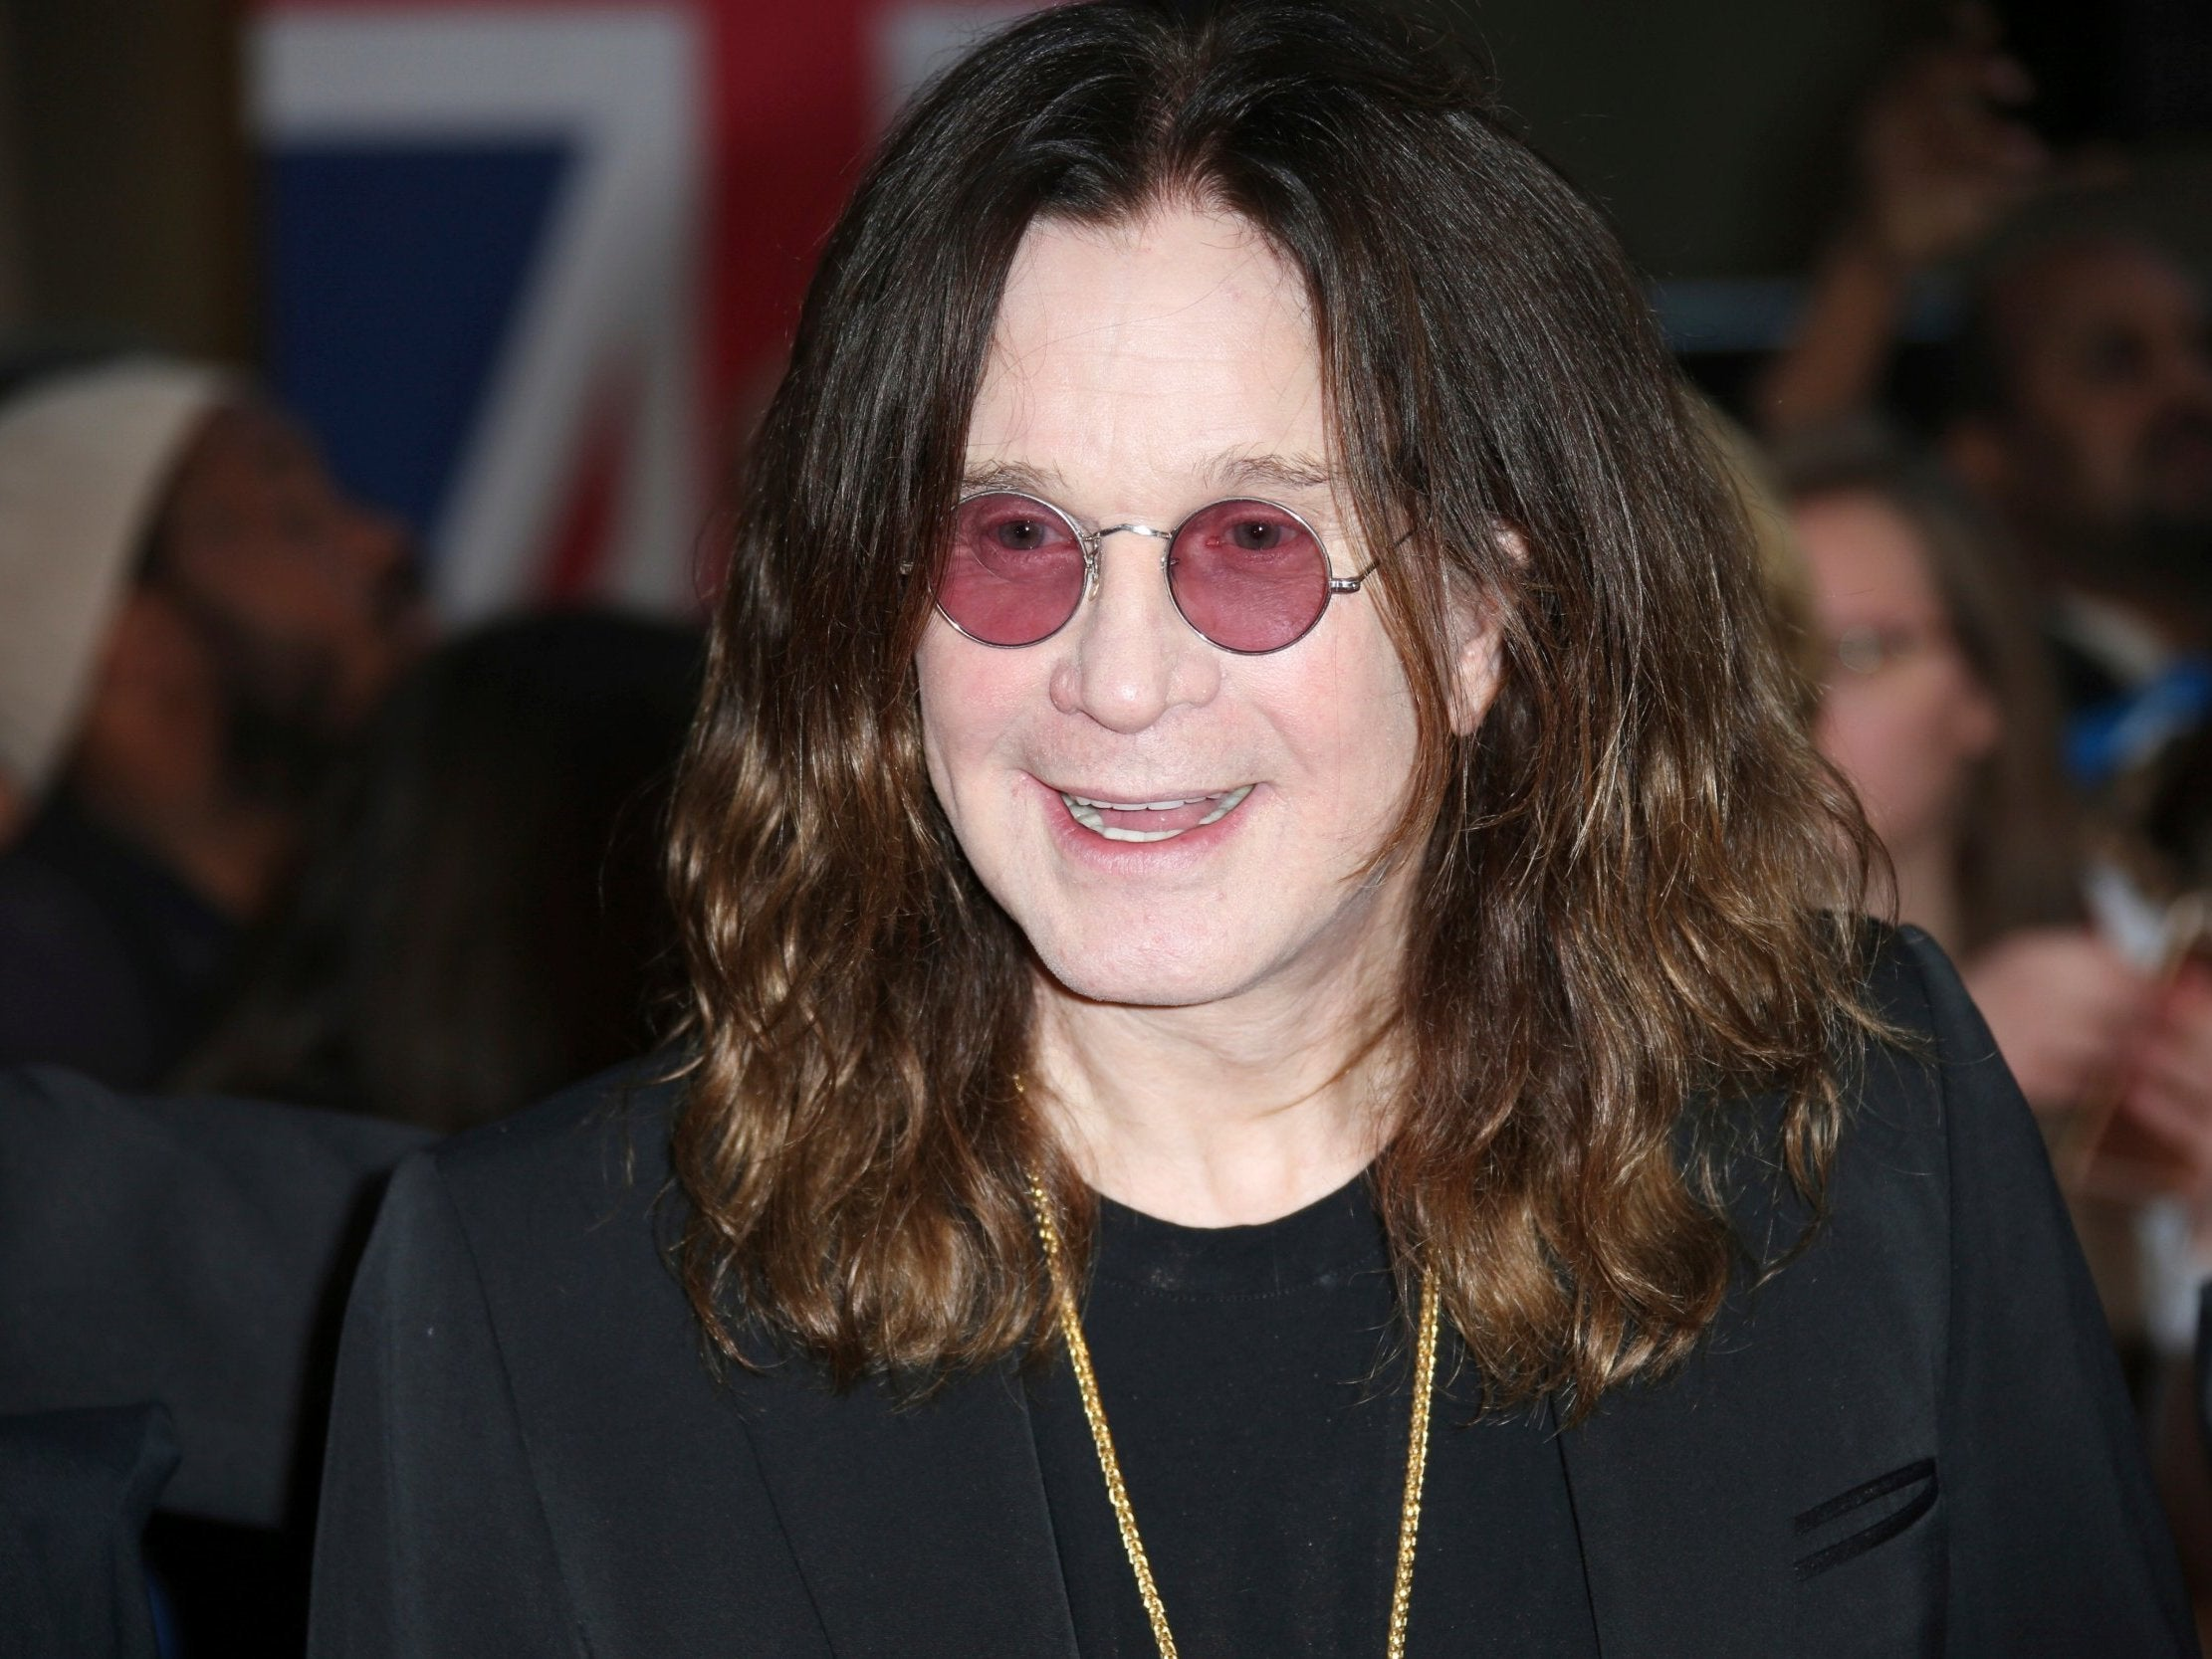 Ozzy Osbourne says neck surgery caused agony 'beyond anything I've experienced in my life'